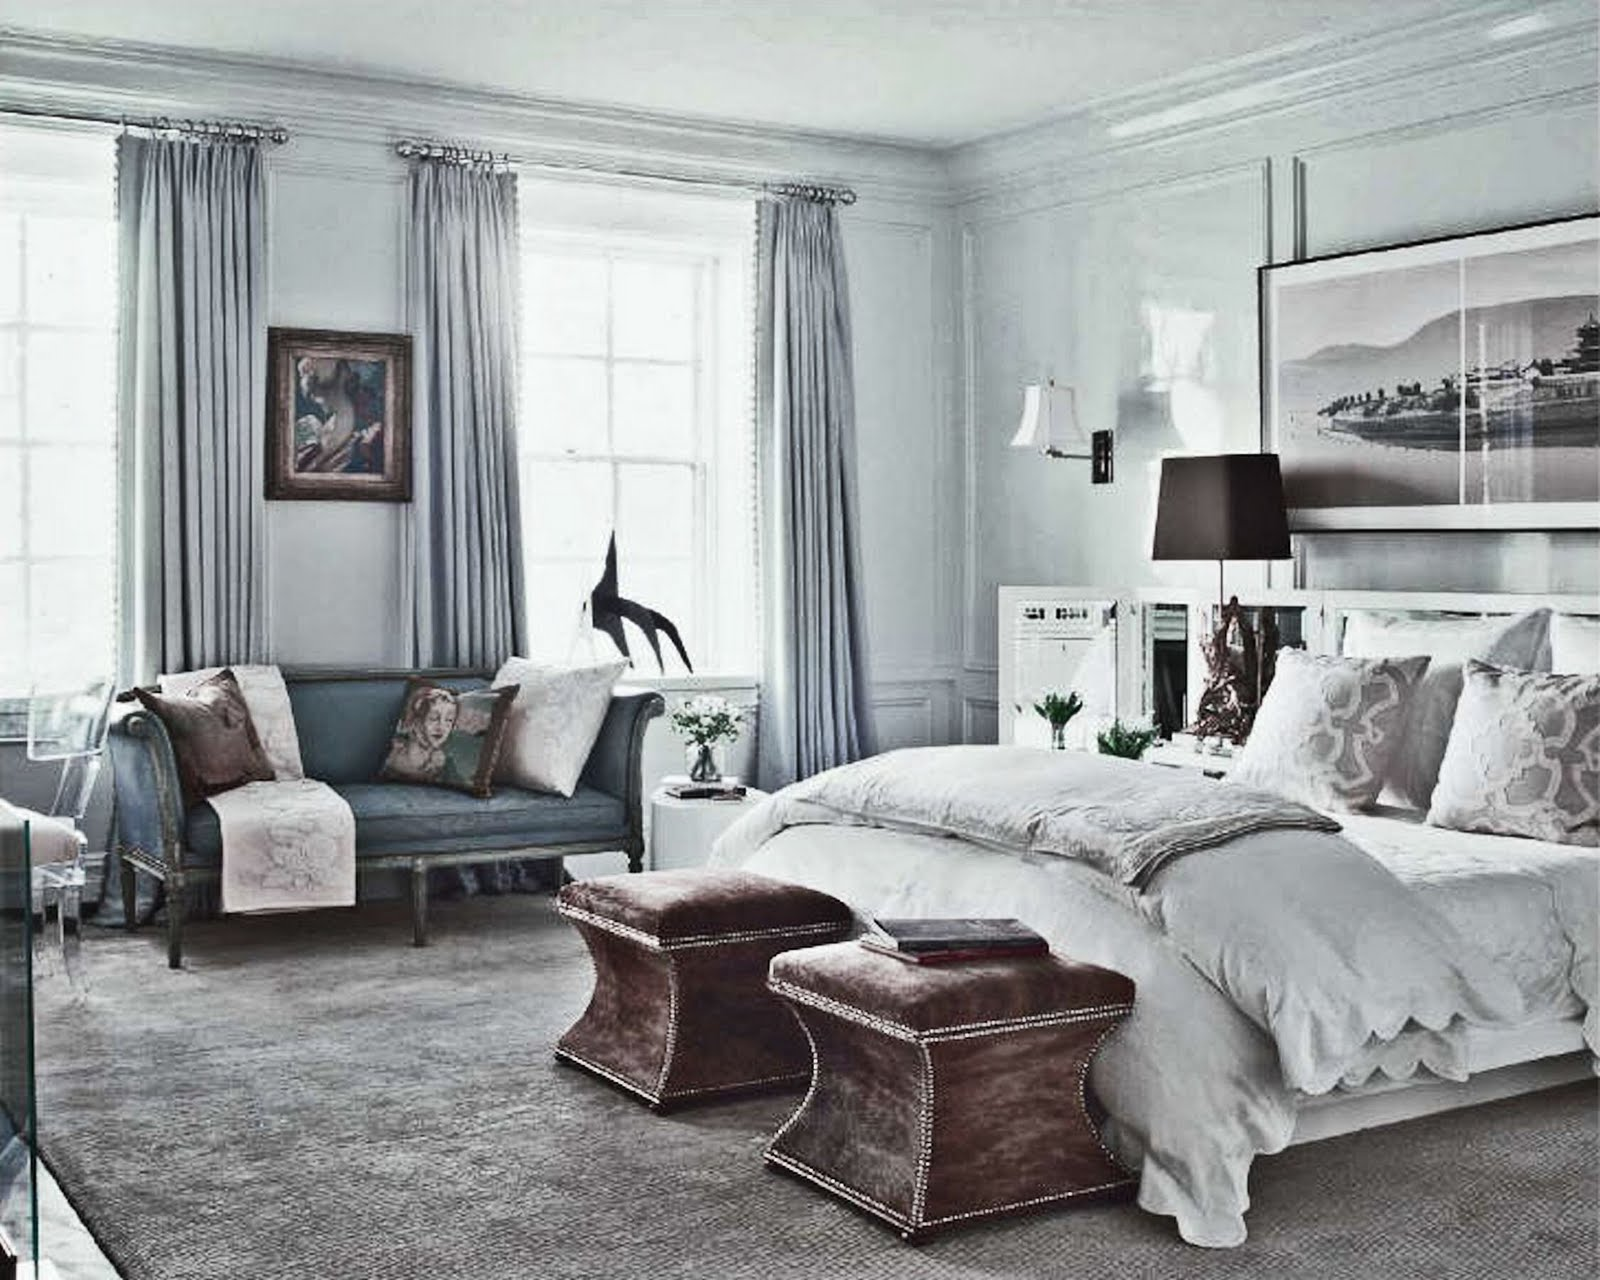 Simple Everyday Glamour: Picture Perfect Bedroom